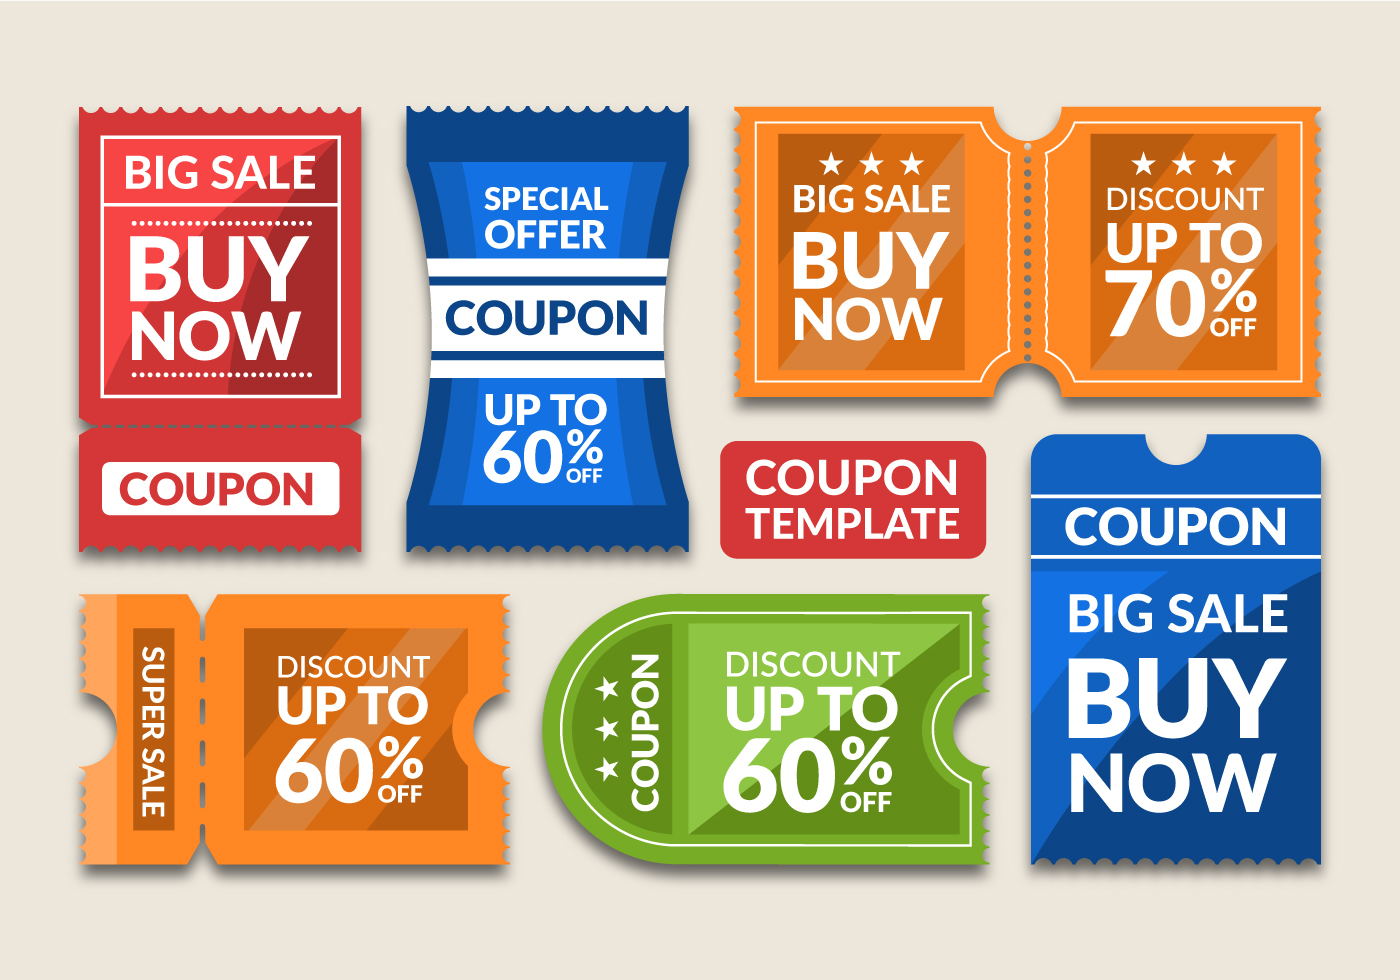 This is a photo of Gargantuan Images of Coupons